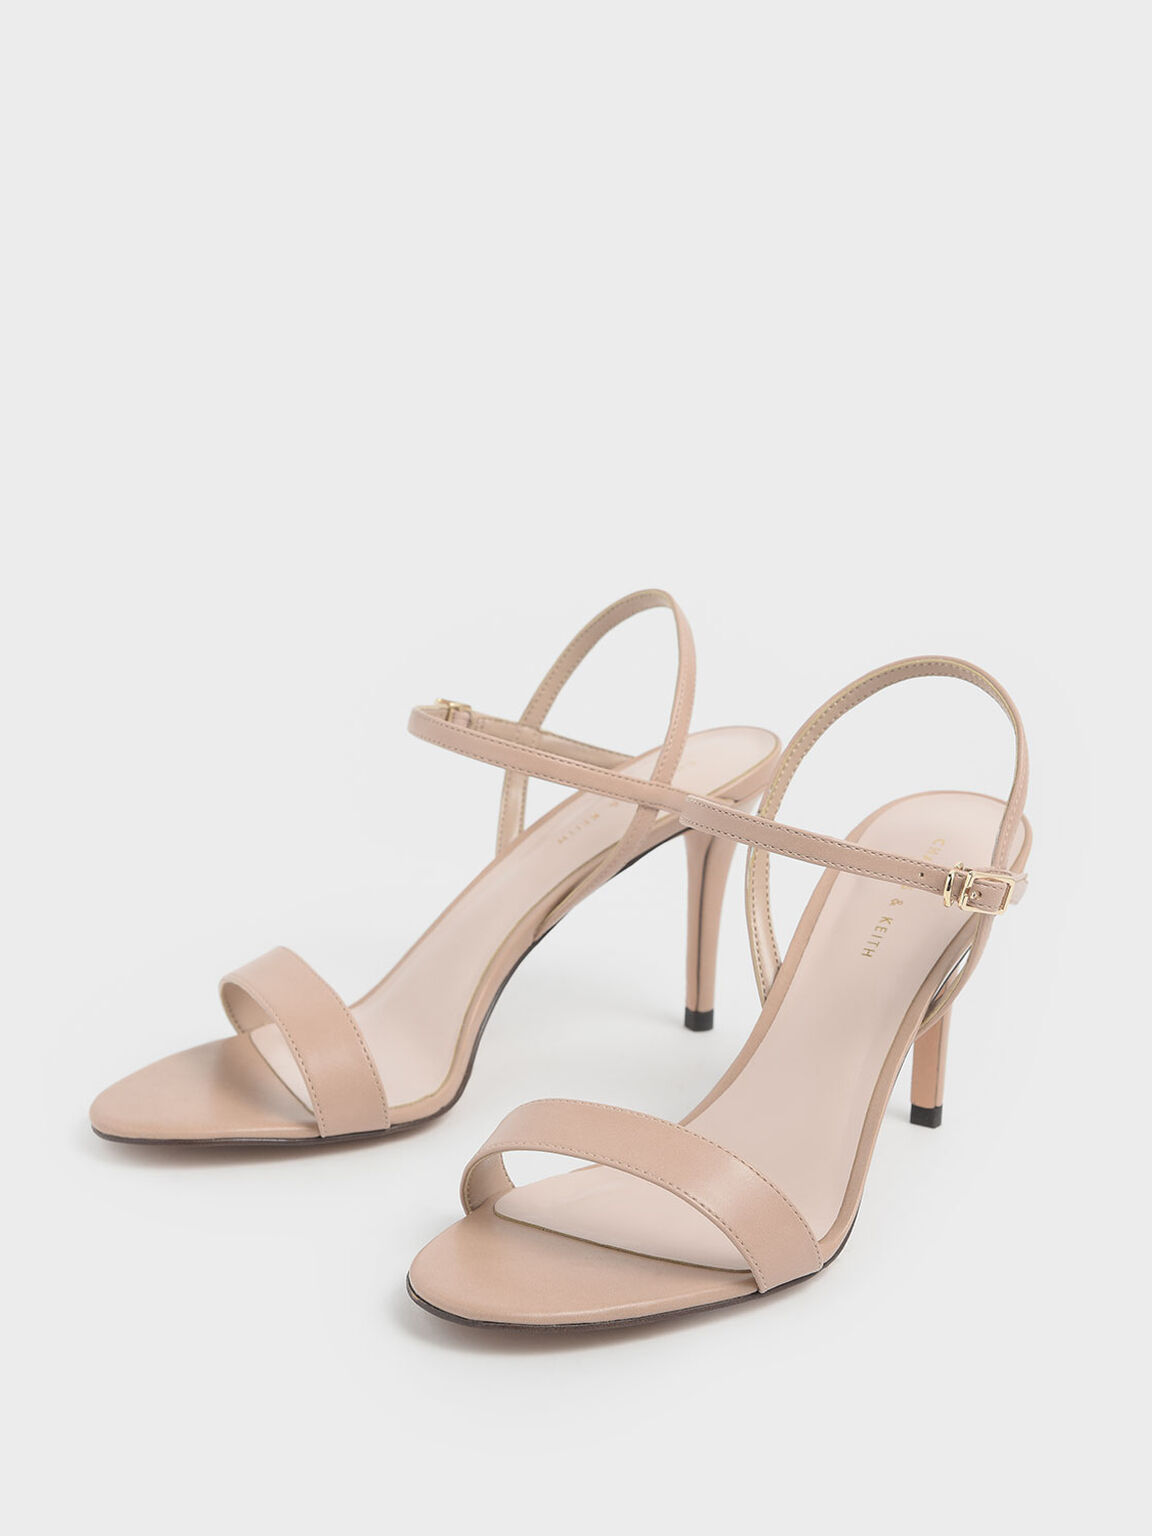 Classic Stiletto Heel Sandals, Nude, hi-res